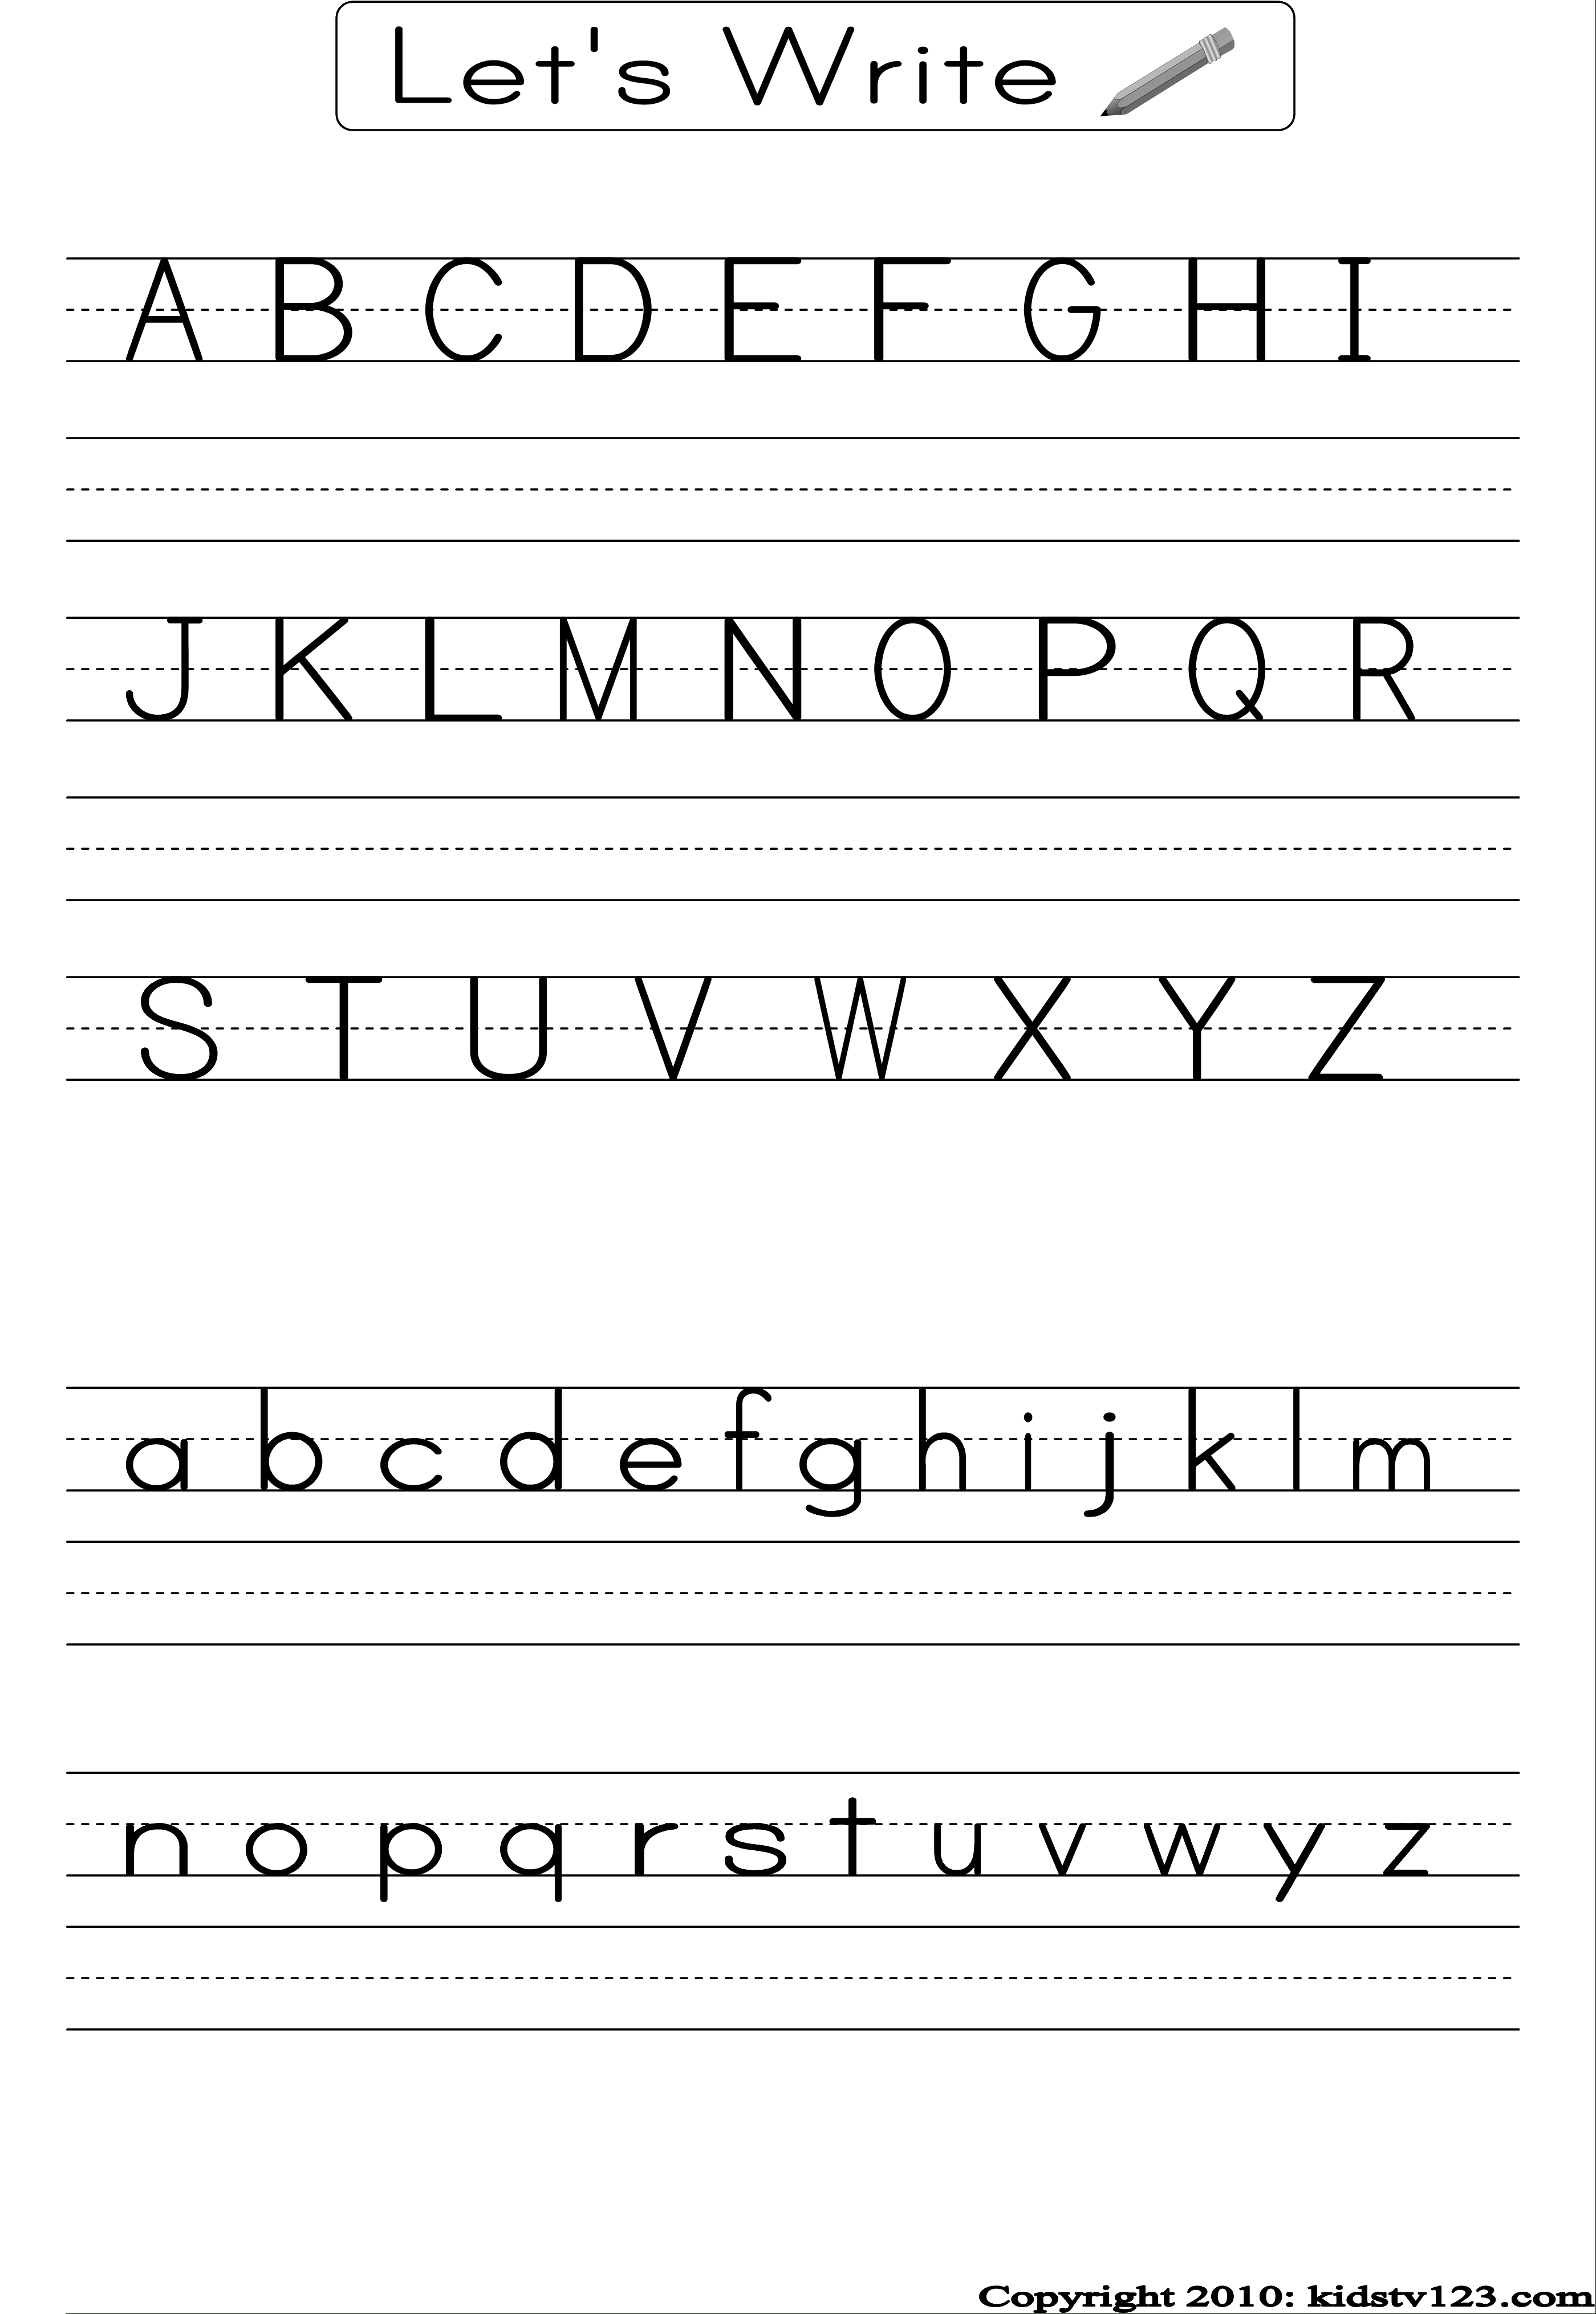 Alphabet Writing Practice Sheet | Edu-Fun | Alphabet Worksheets | Free Printable Letter Worksheets